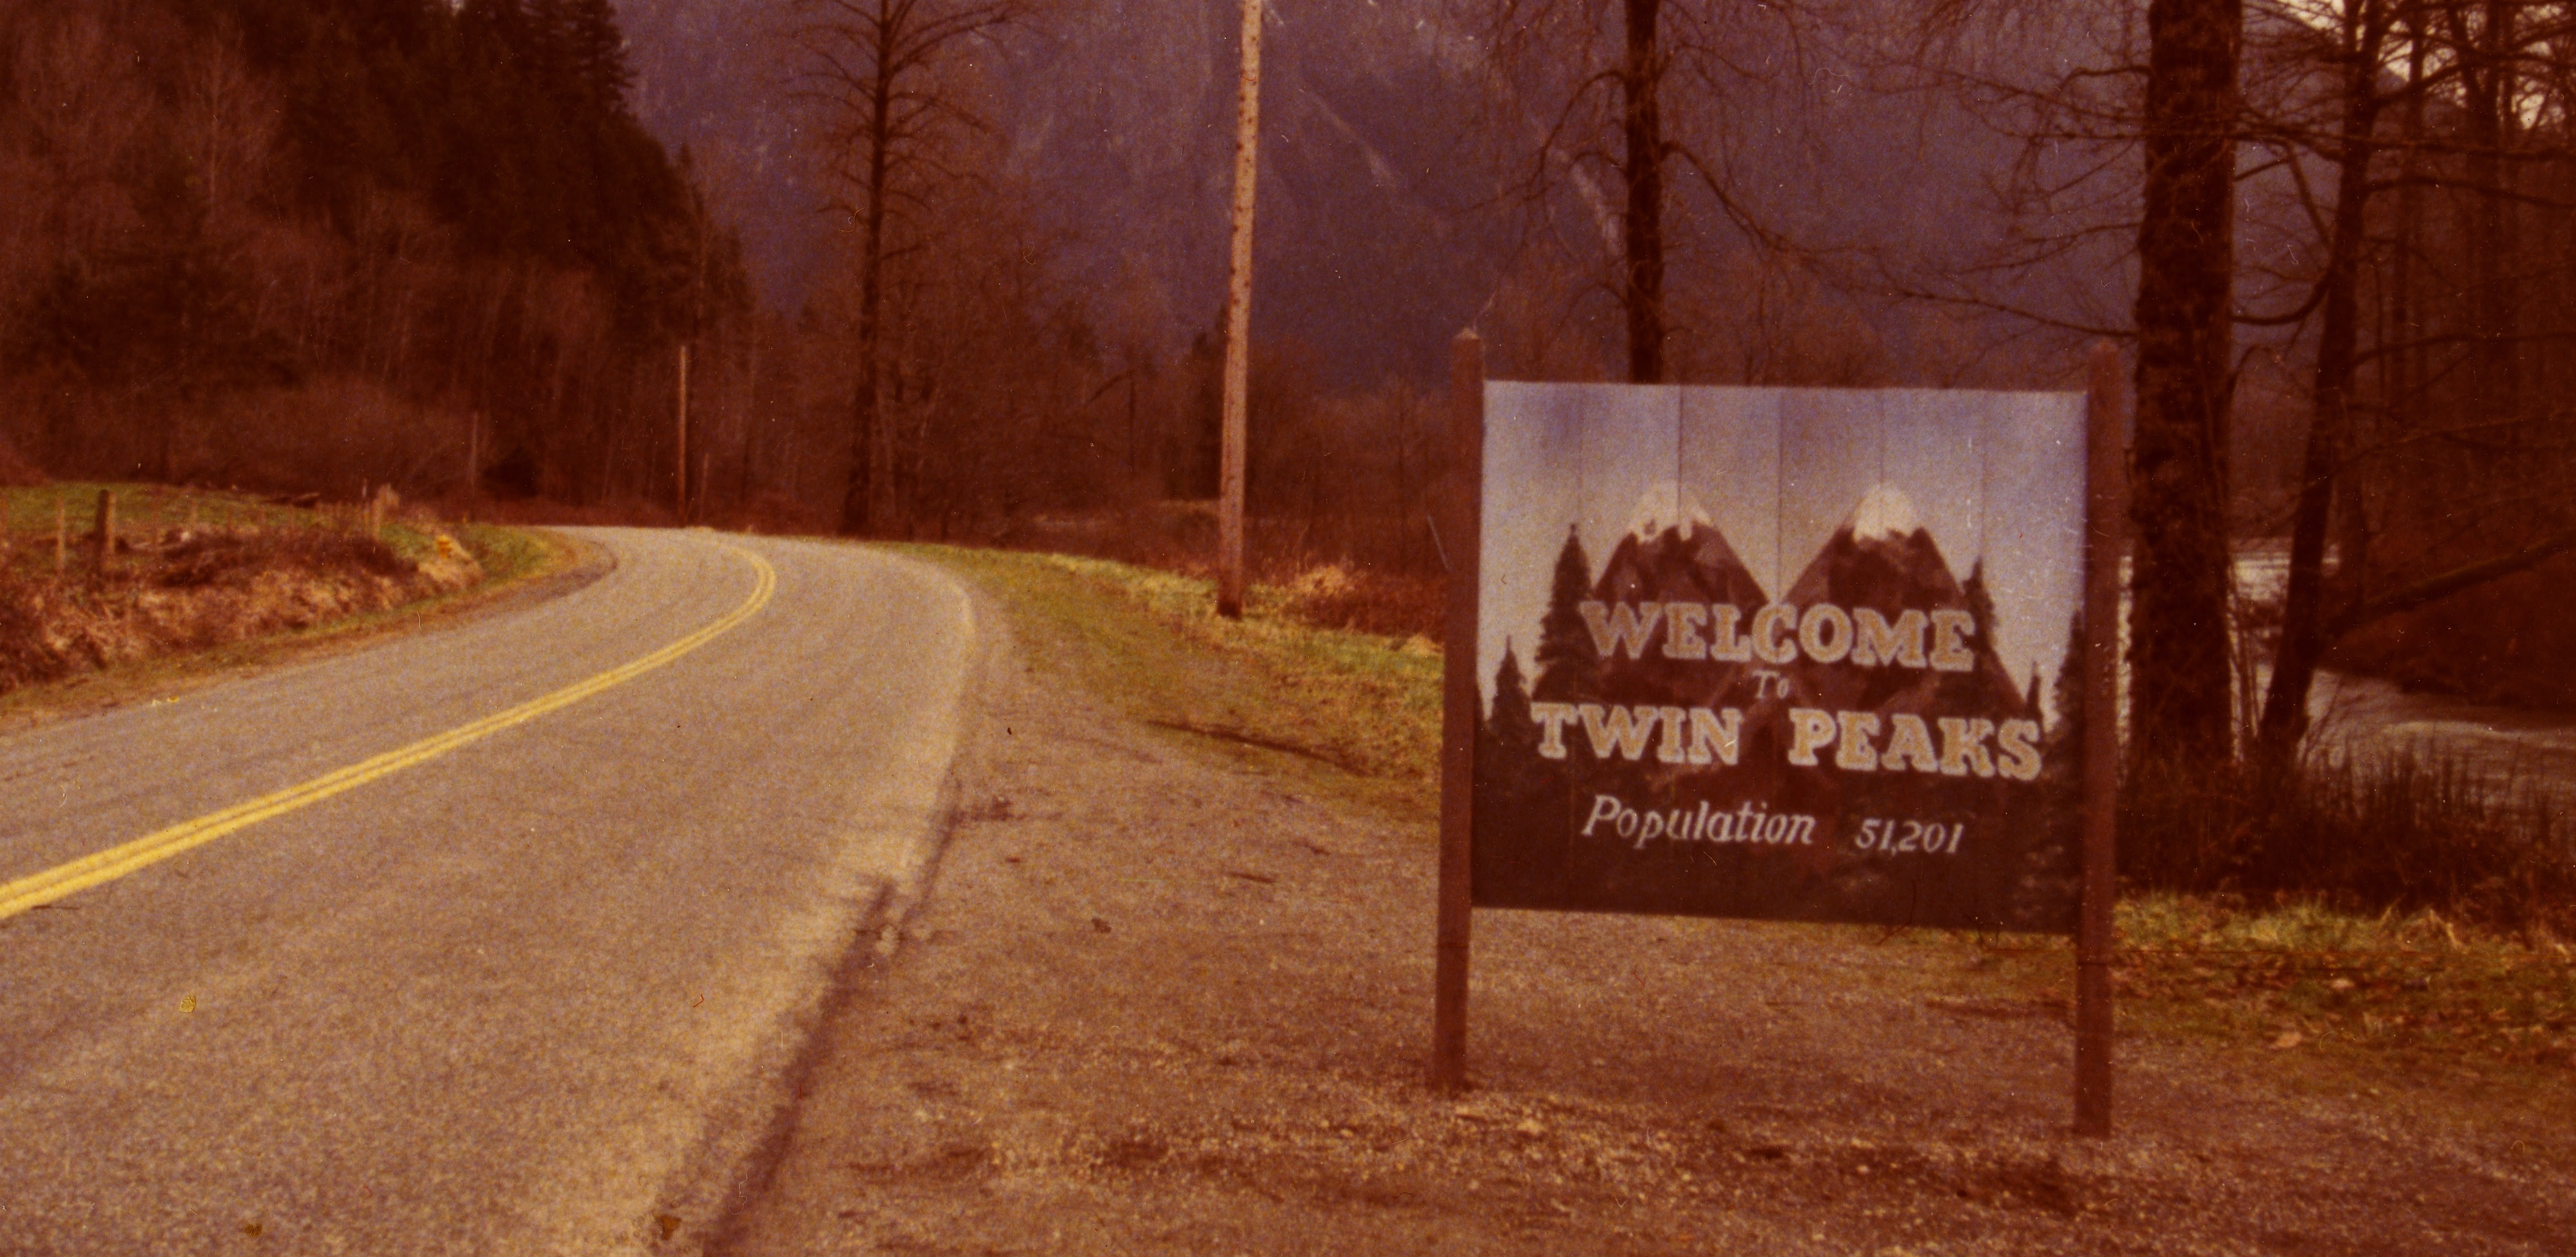 Twin Peaks Set To Return In 2016 With New Episodes On Showtime